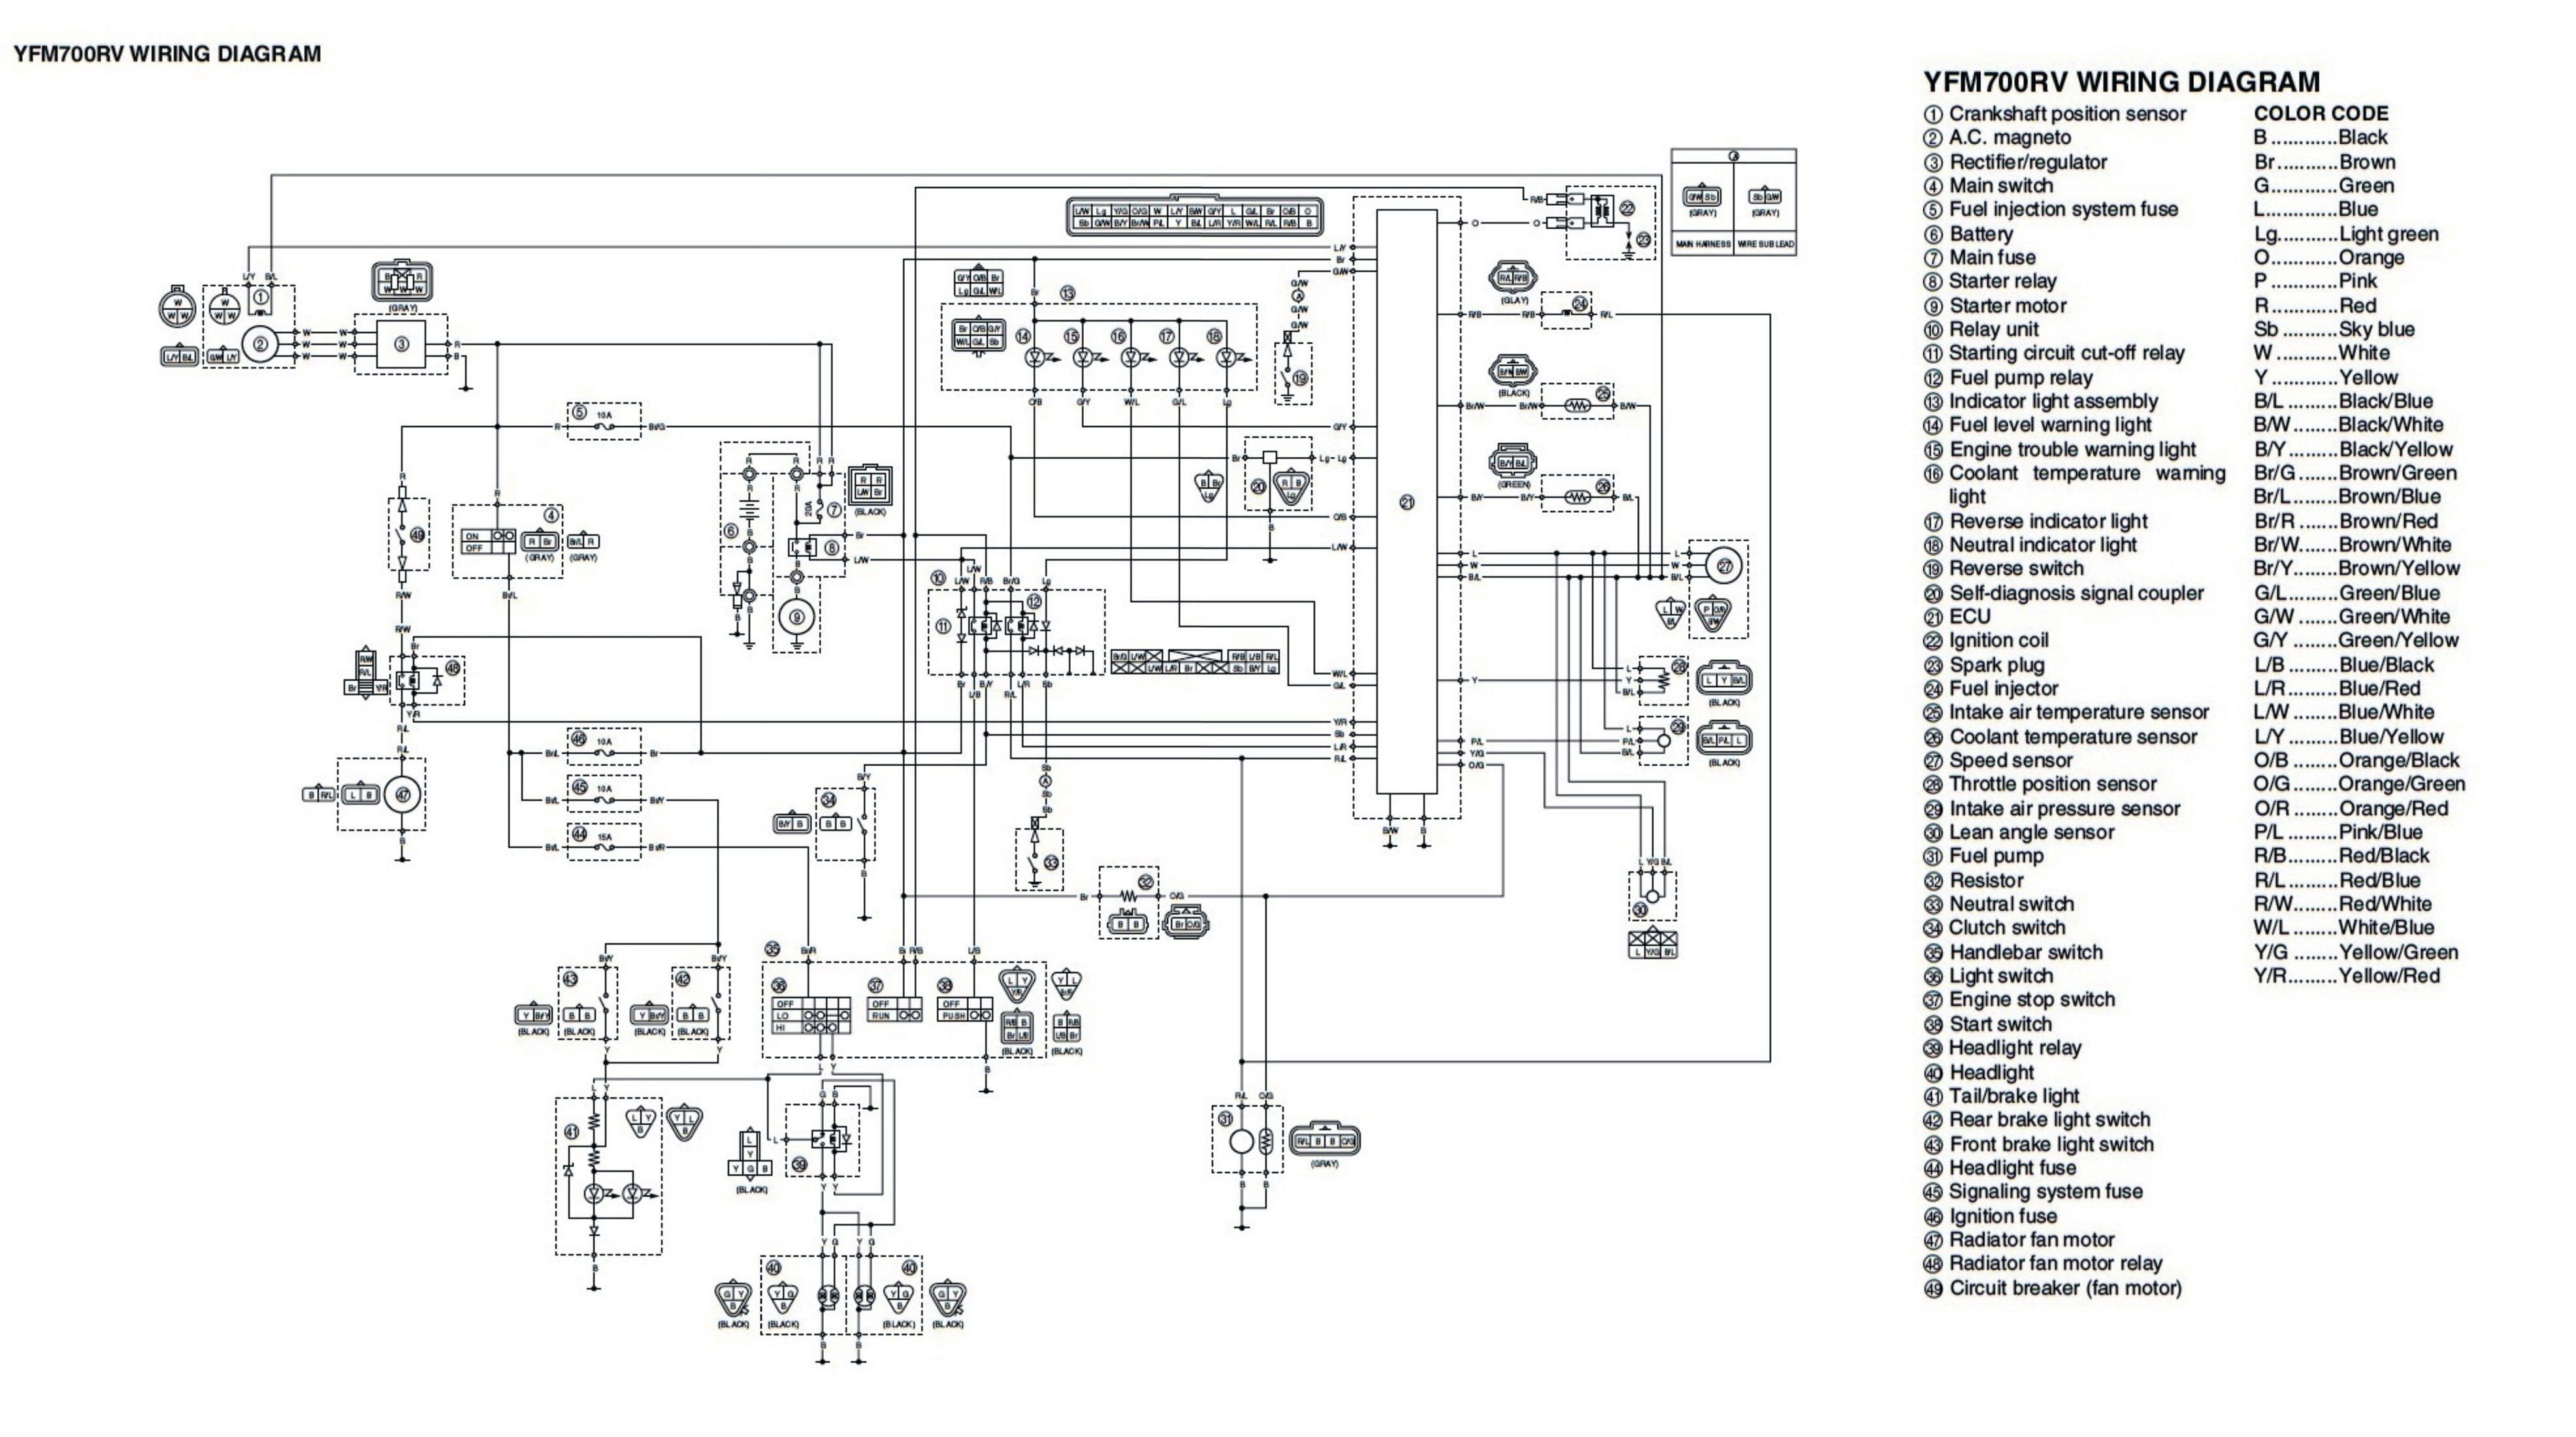 Yamaha Grizzly 660 Engine Diagram Yamaha Grizzly 660 Wiring Diagram Of Yamaha Grizzly 660 Engine Diagram